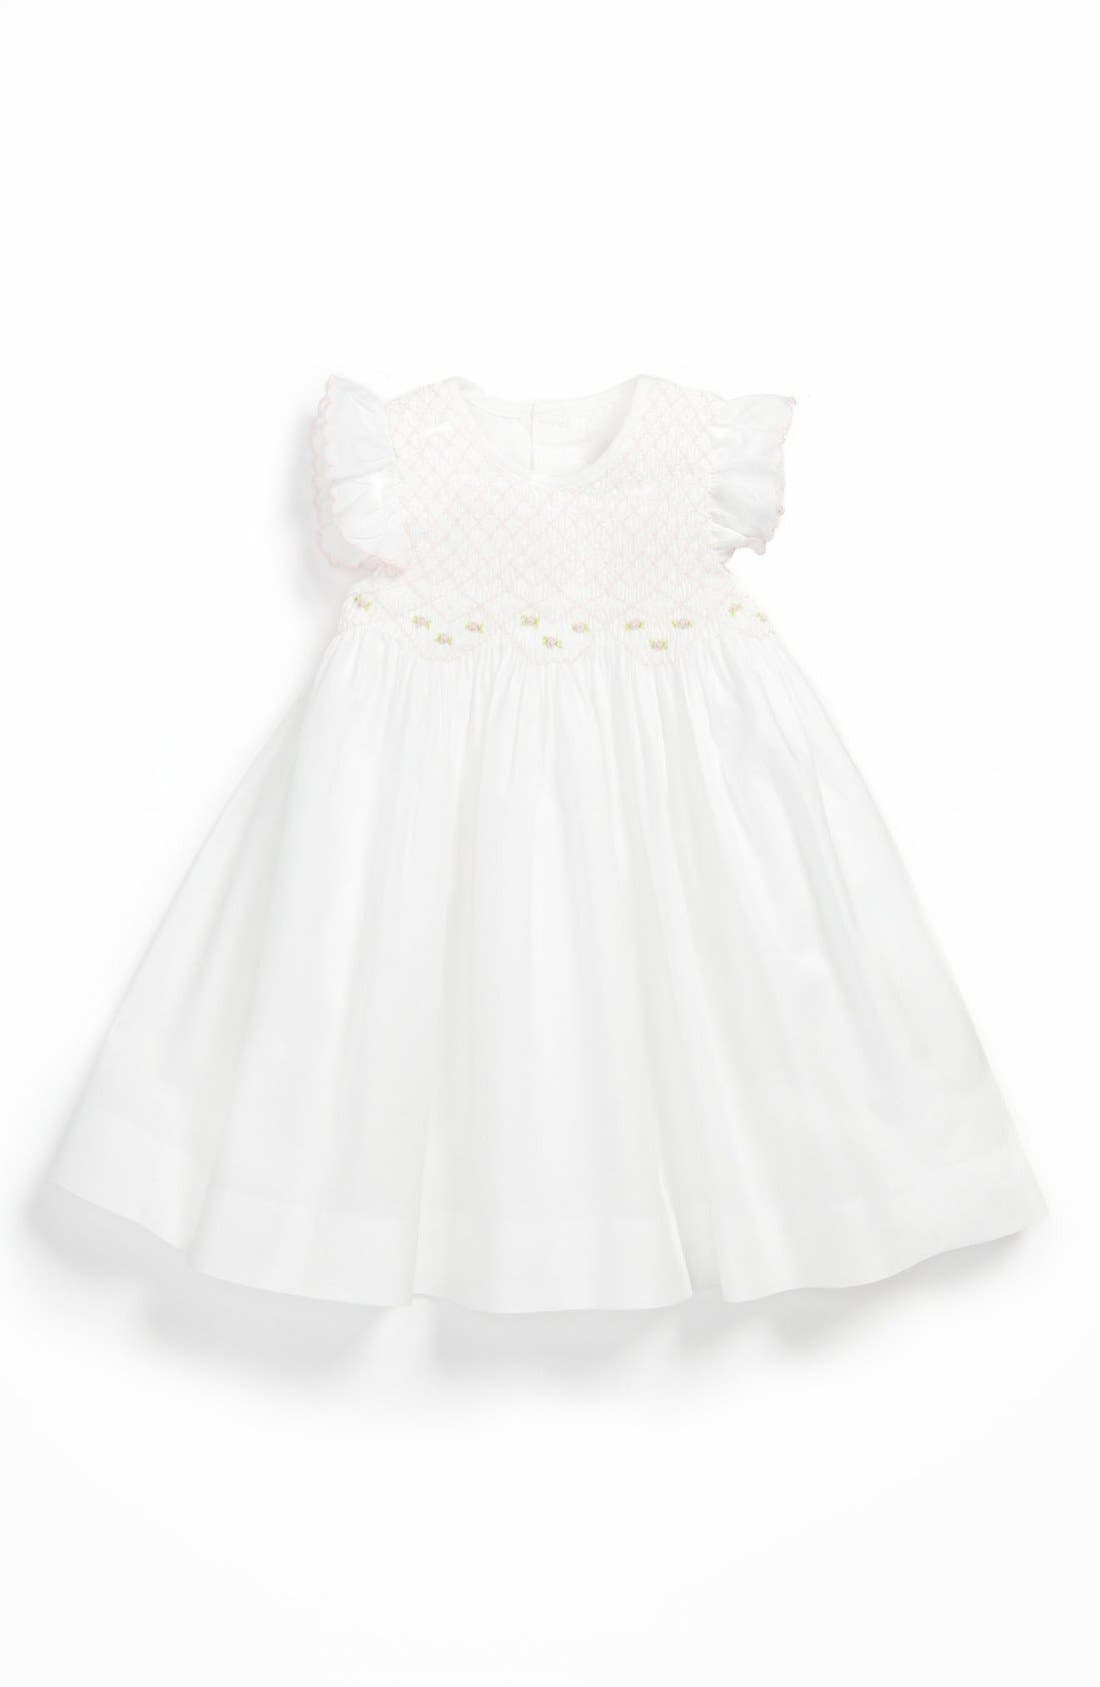 'Brianna' Dress,                         Main,                         color, White/ Pink